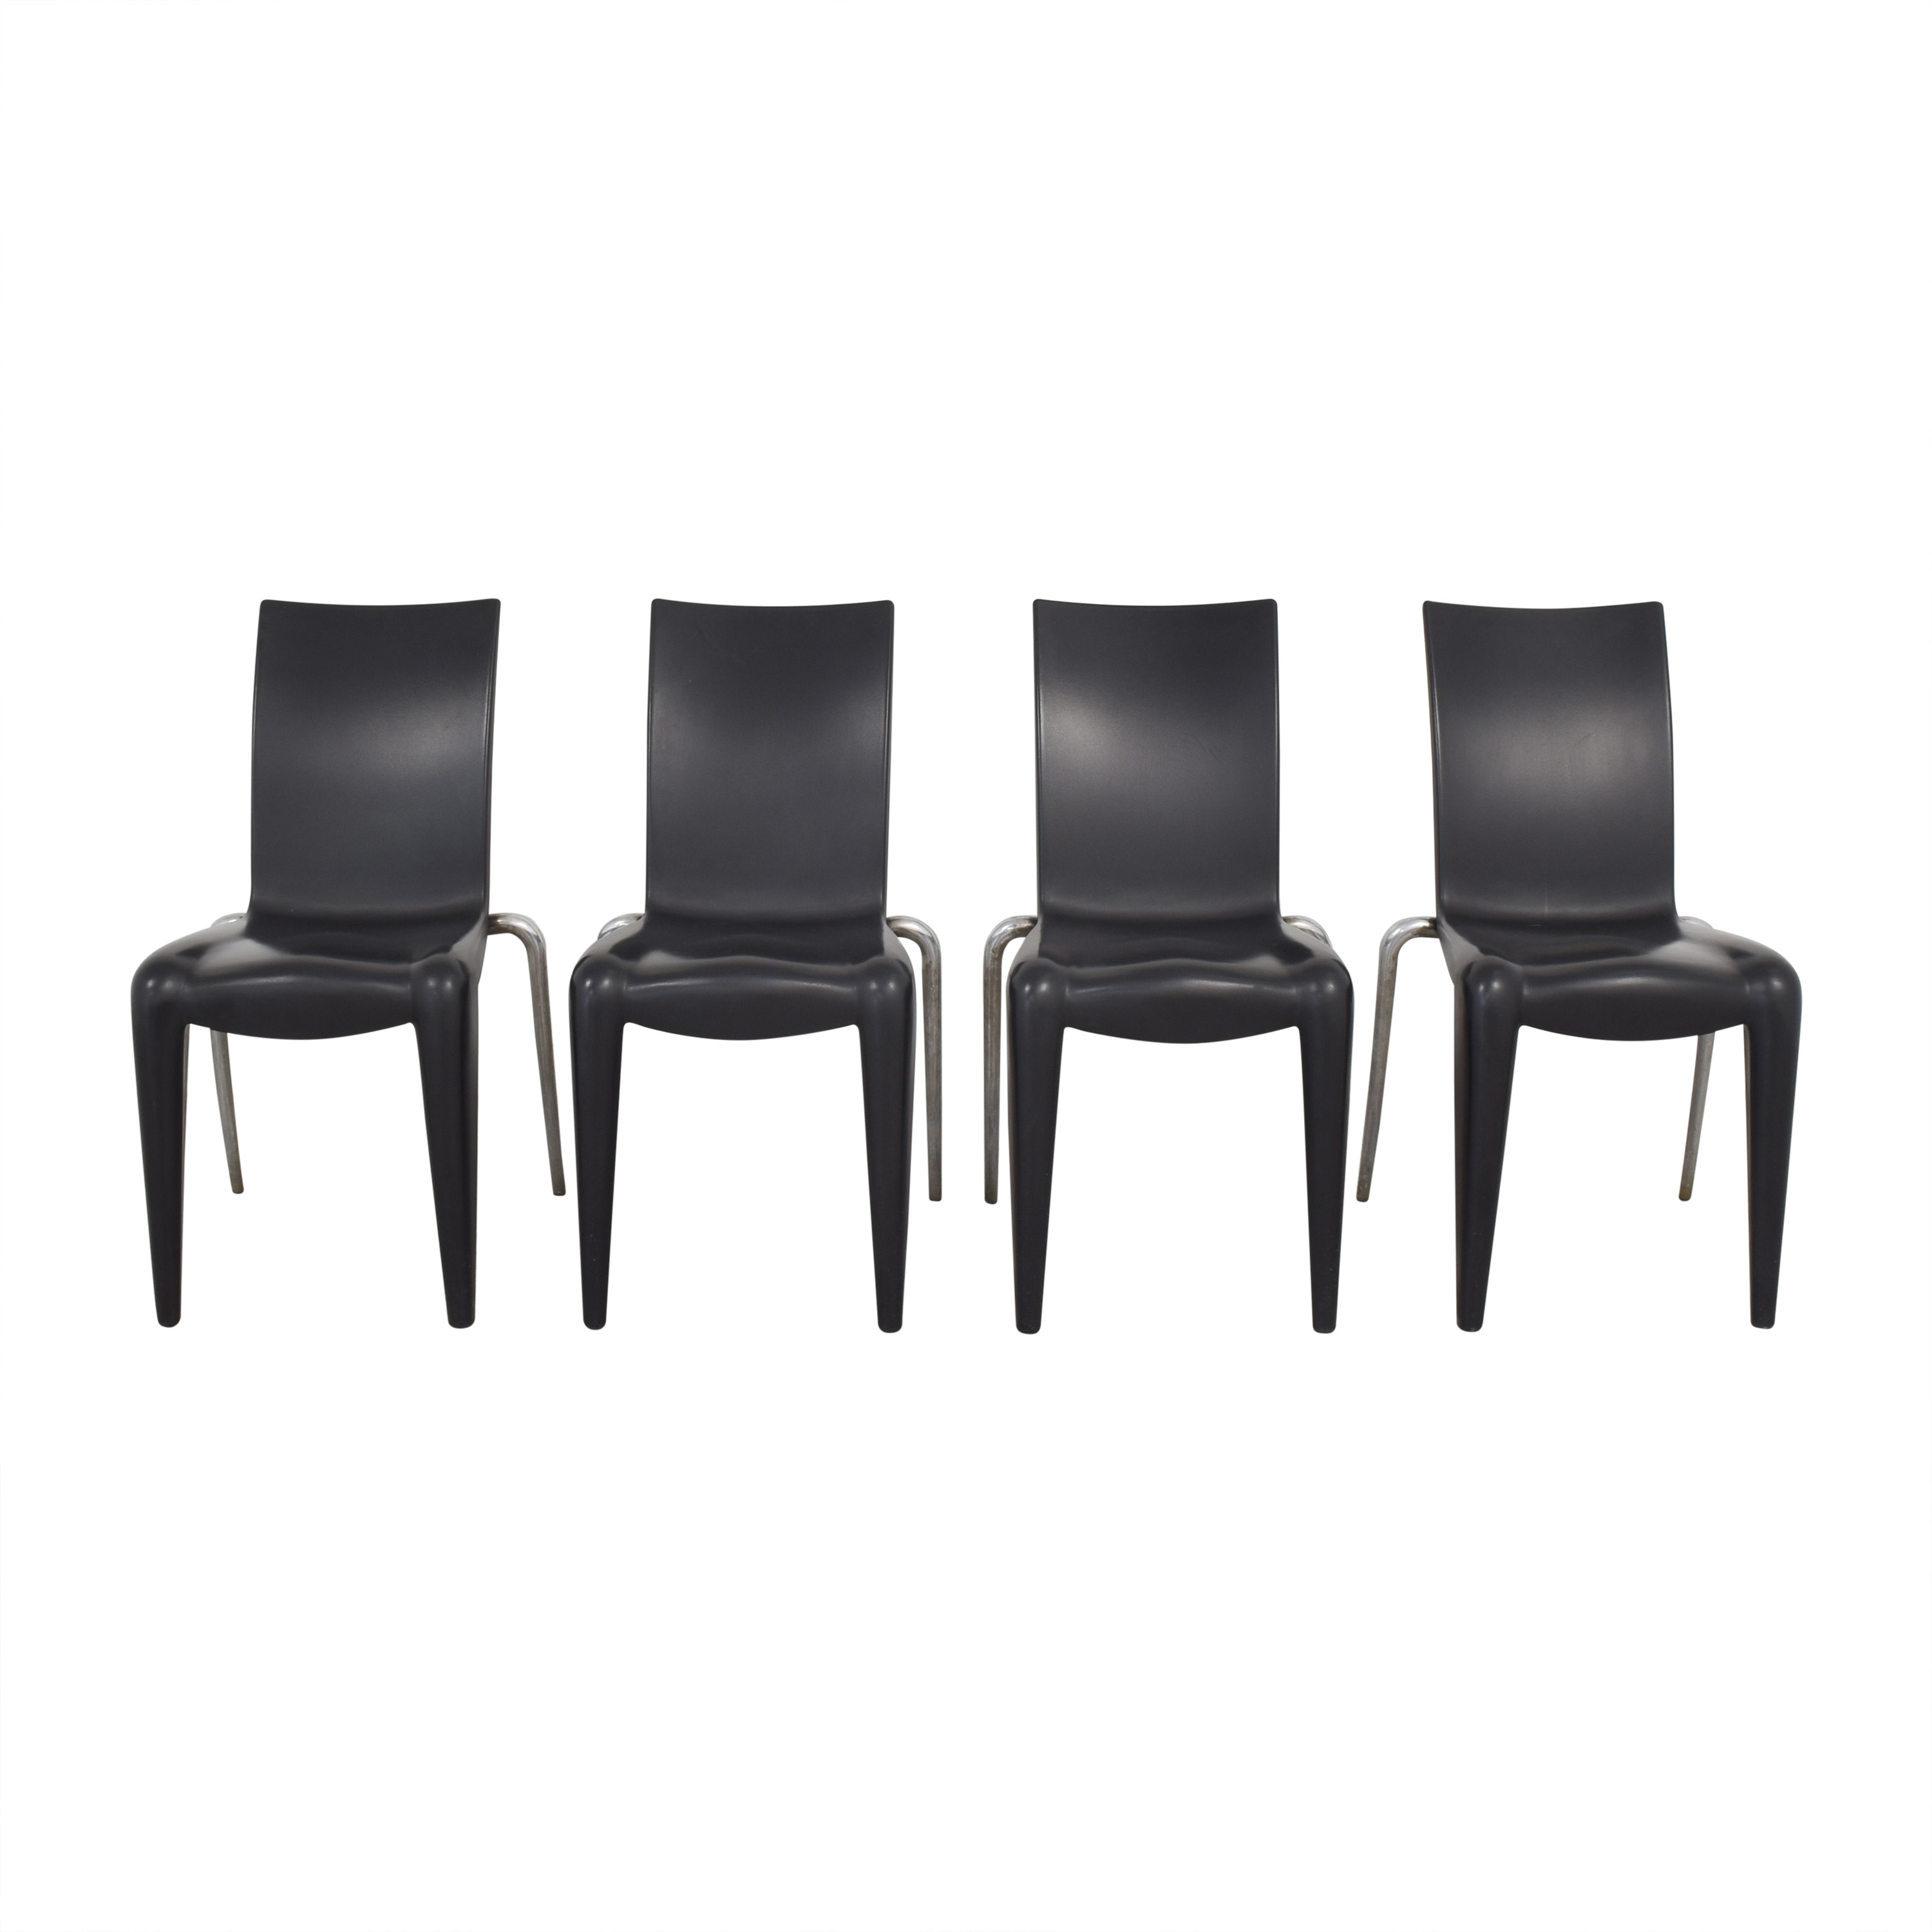 Vitra Vitra Louis 20 Dining Chairs by Phillipe Starck Chairs